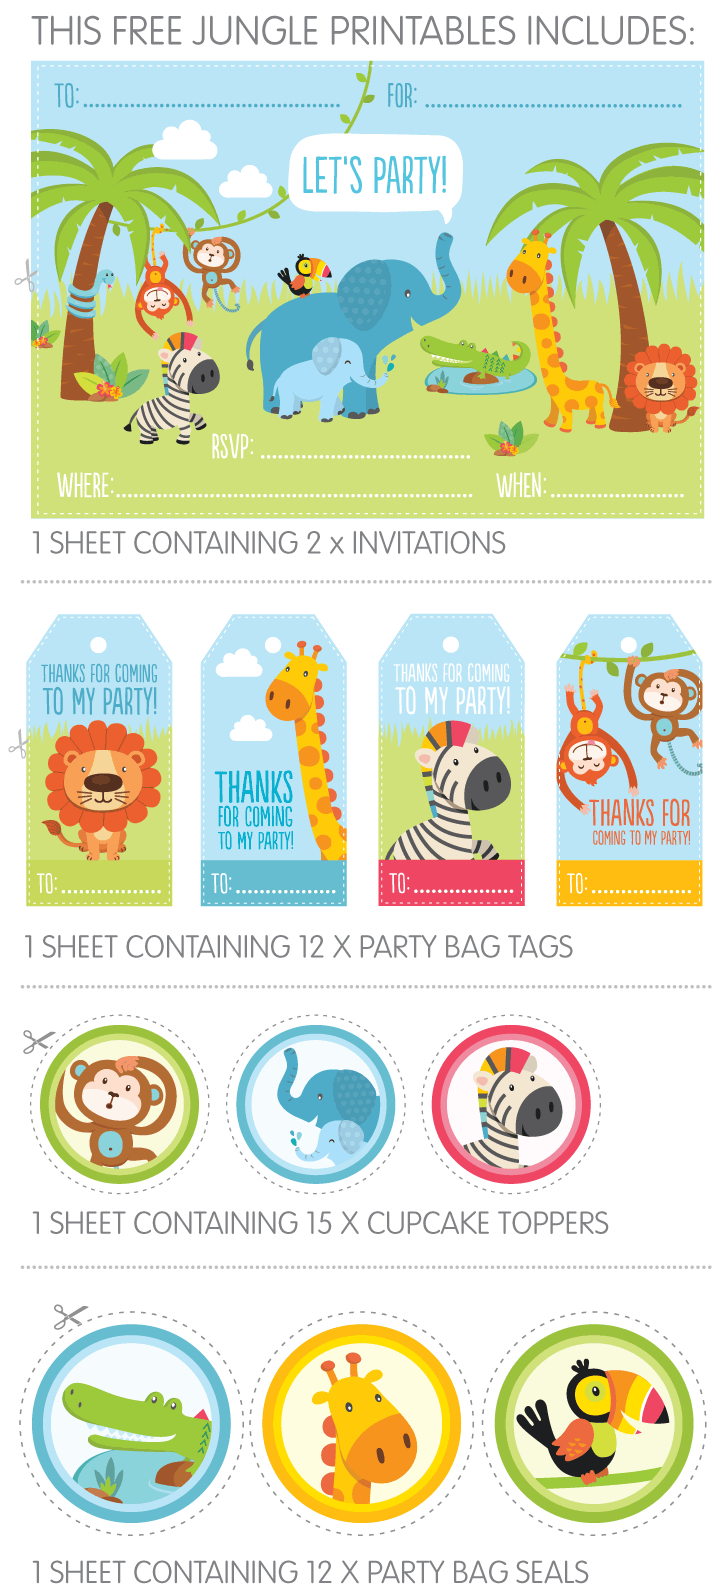 Free Jungle Party Invitation Printables | Give-Aways | Jungle Party - Jungle Theme Birthday Invitations Free Printable